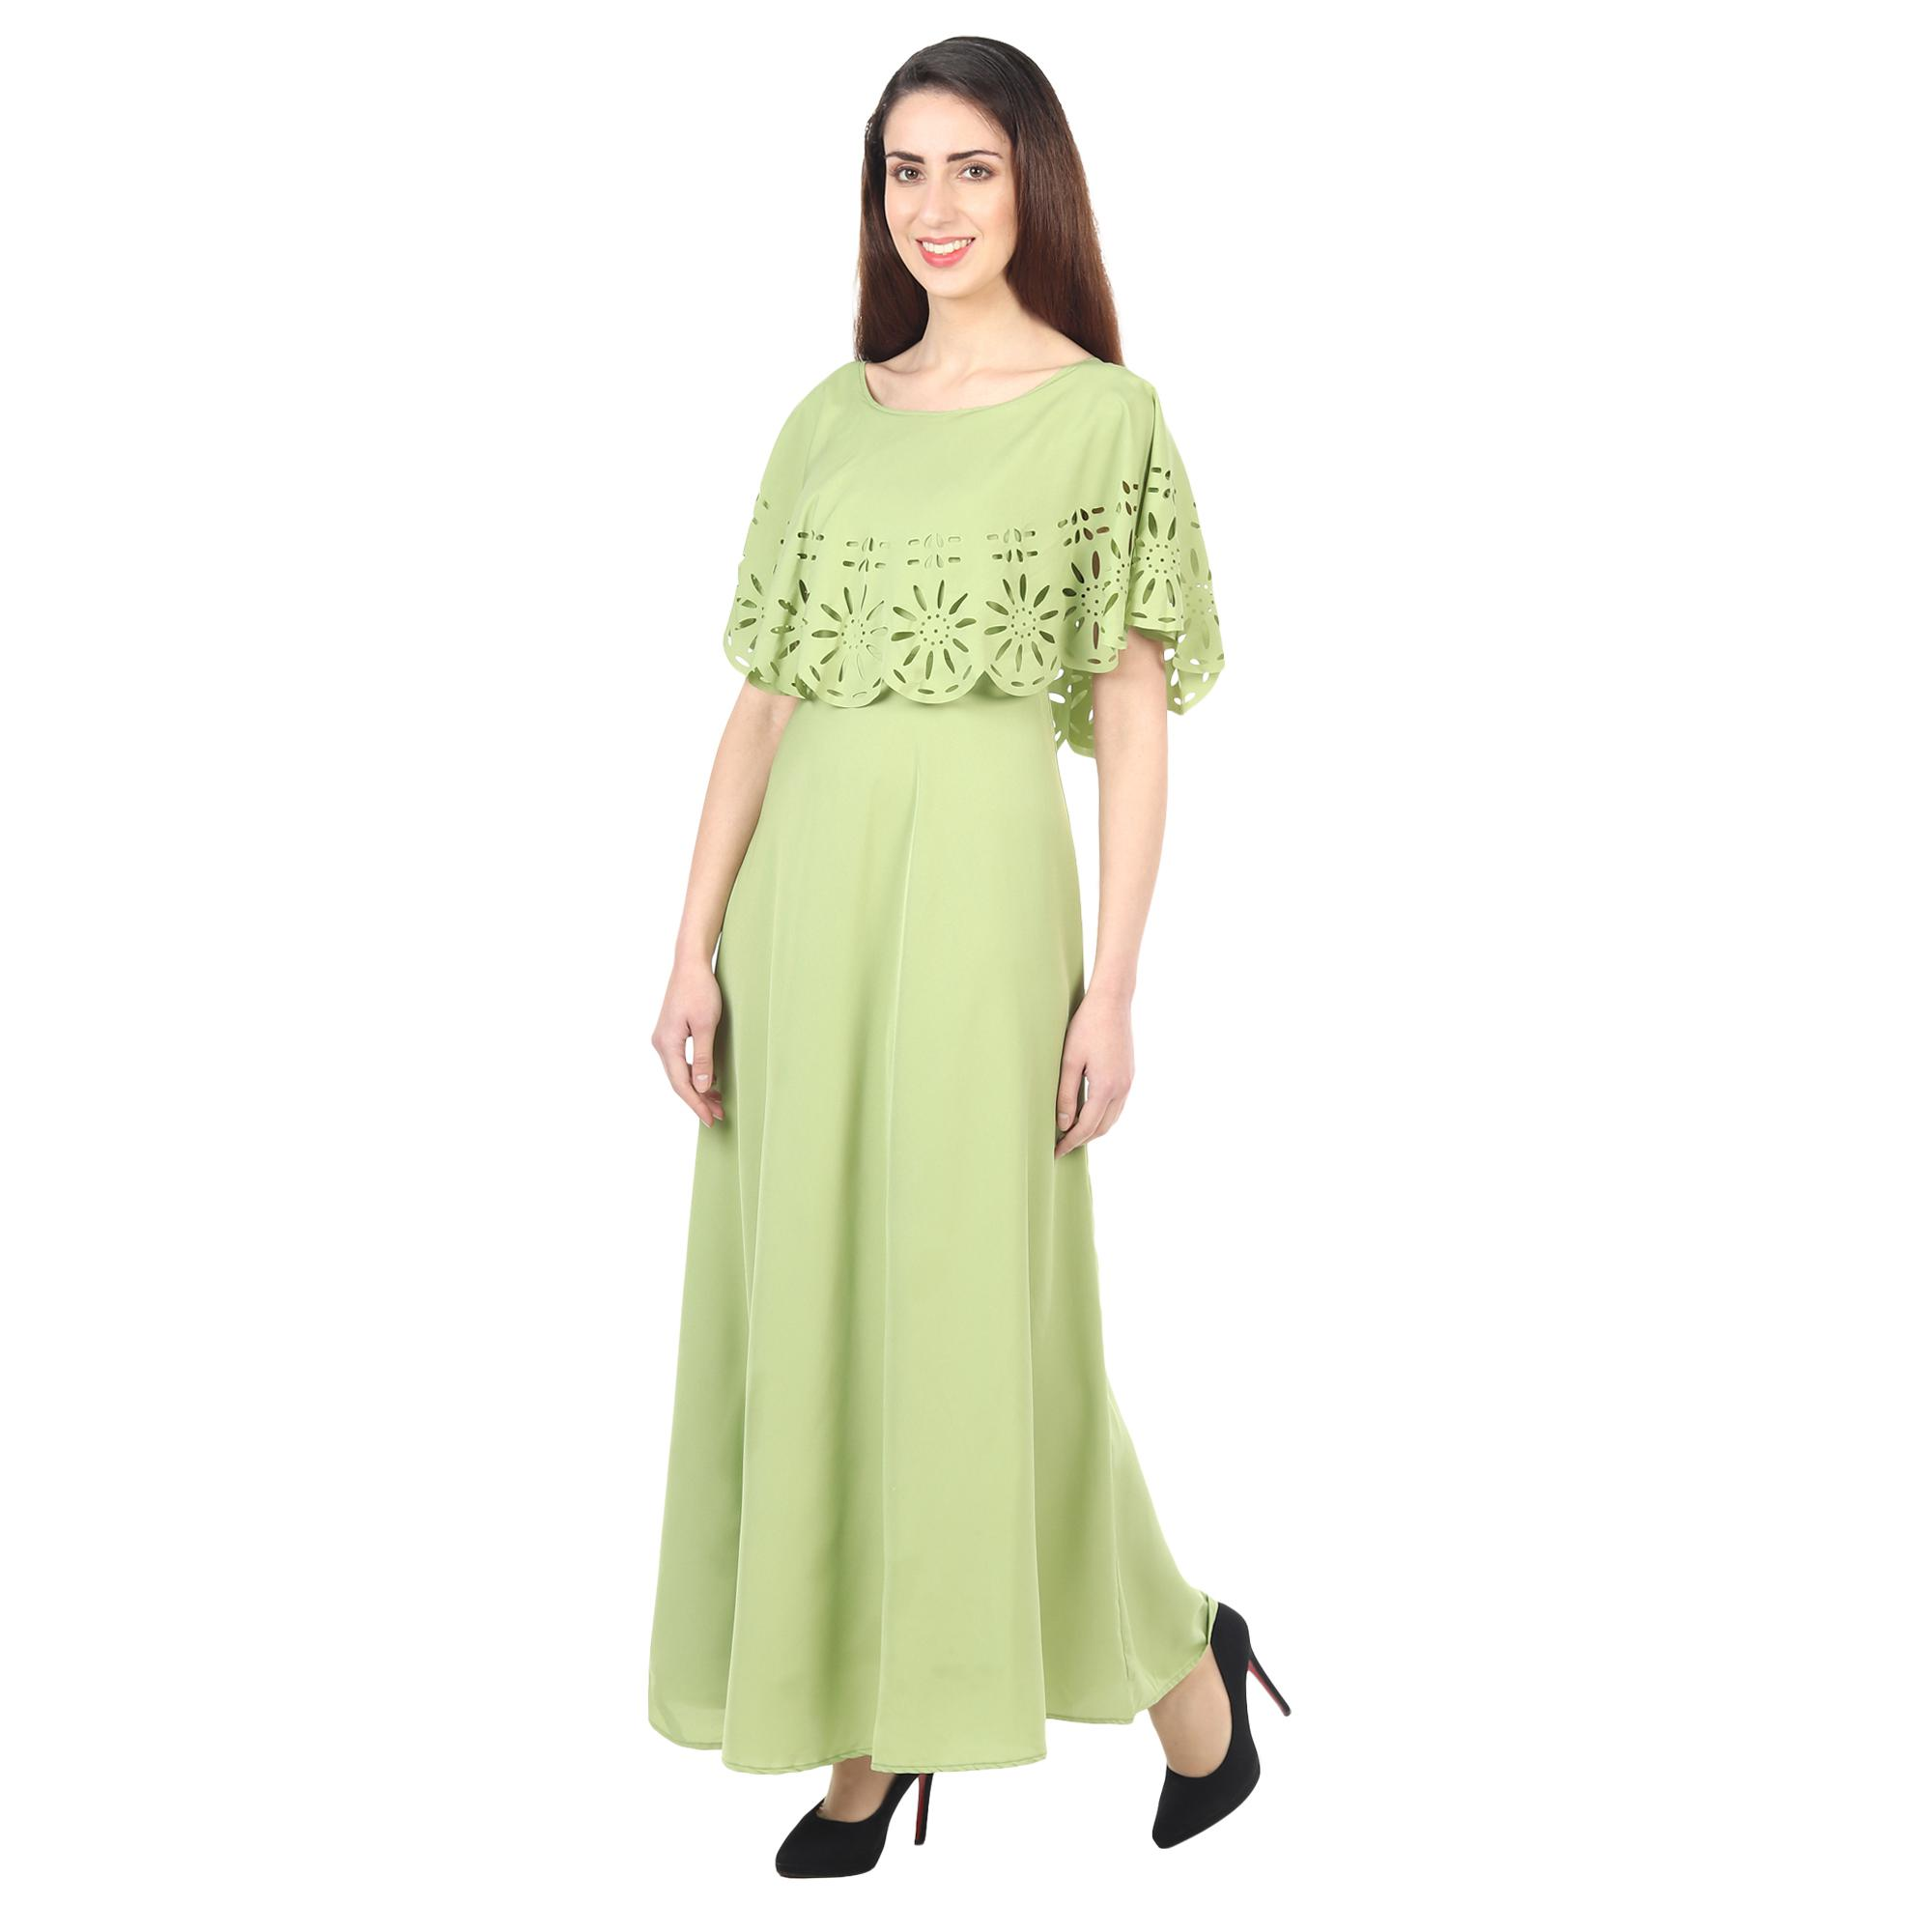 OMADAM - Light Green Colored Casual Wear Floral Crepe Cape Gown